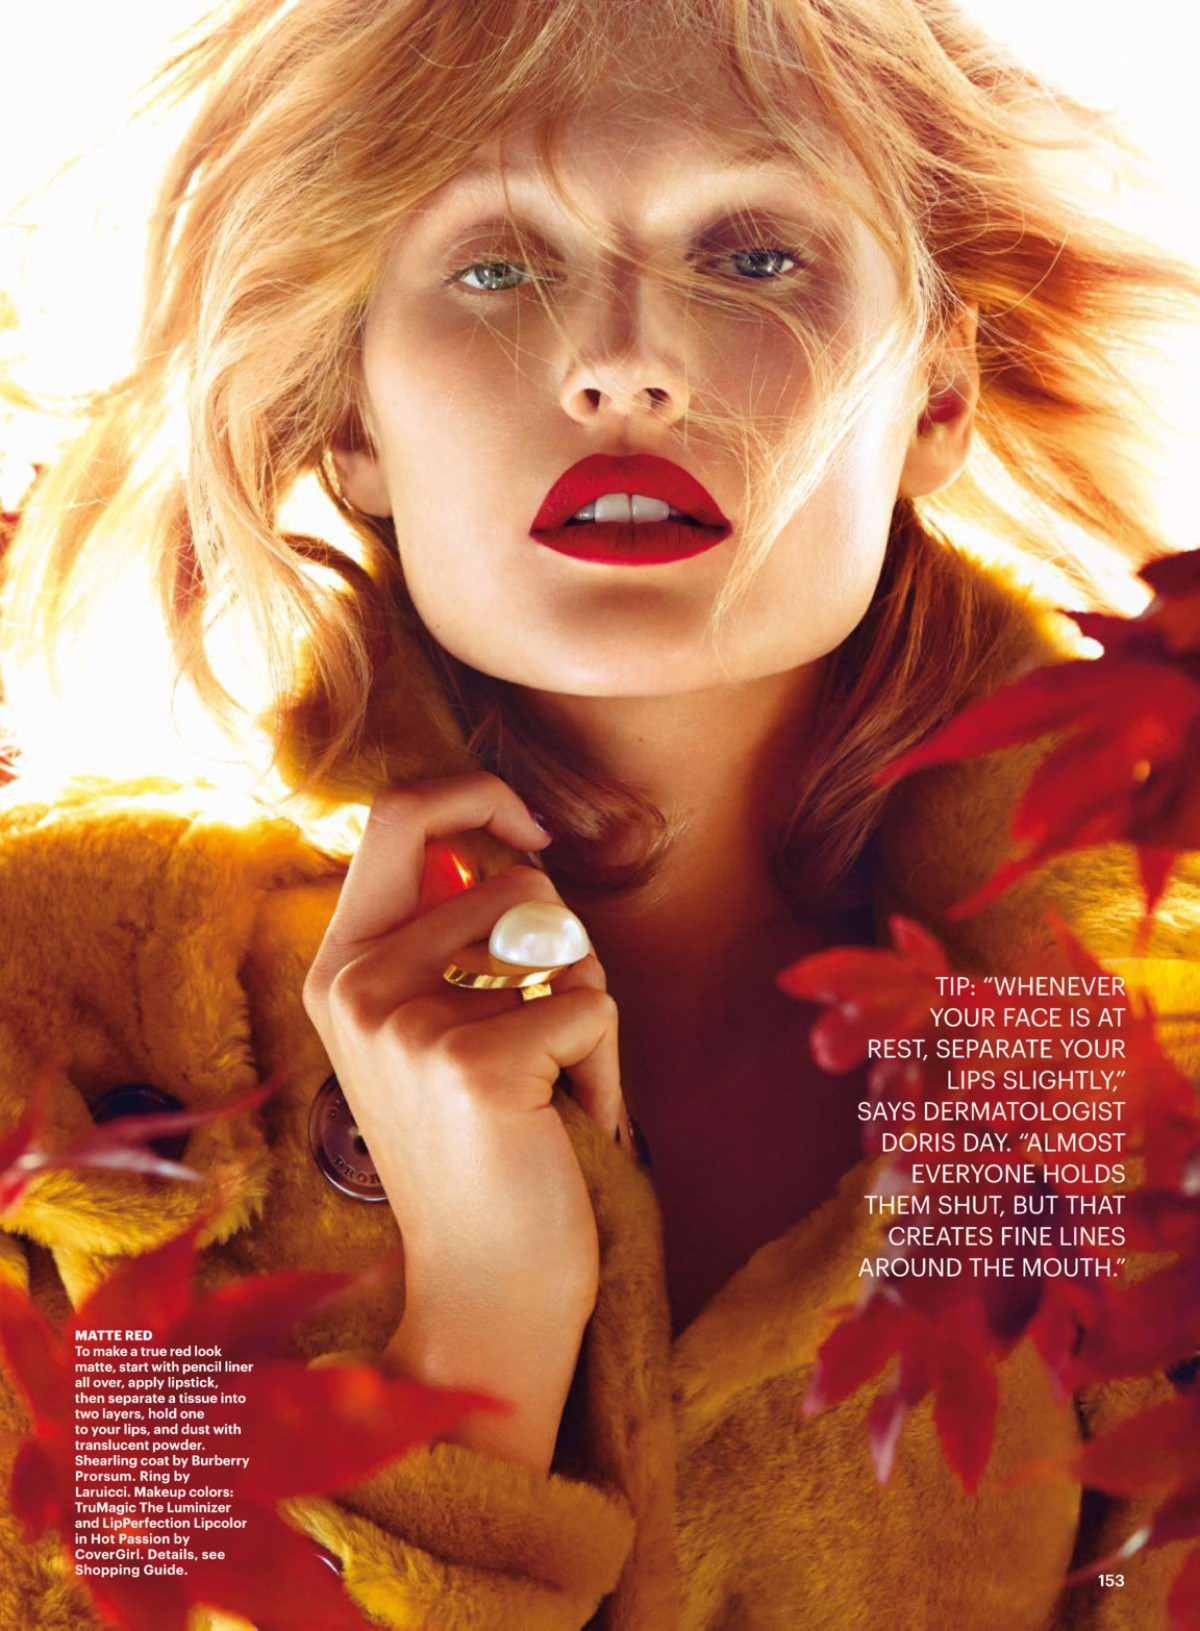 Toni-Garrn-by-Camilla-Âkrans-for-Allure-November-2014-4